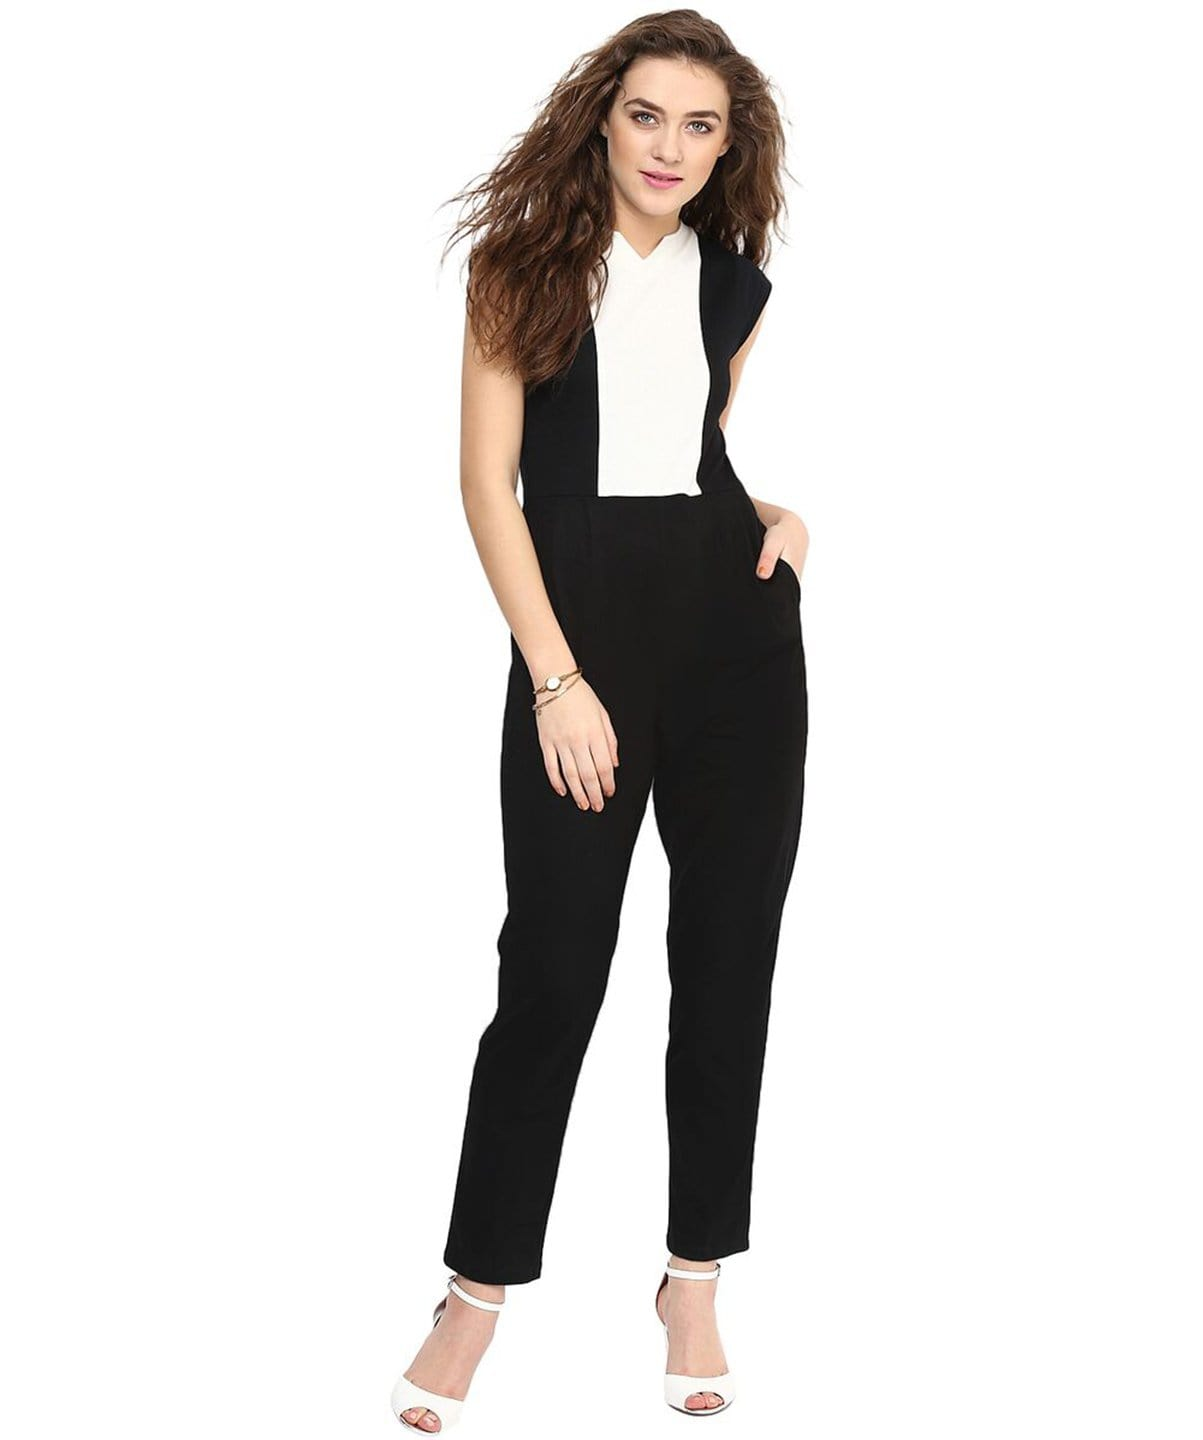 The Black & White Solid Cotton Jumpsuit